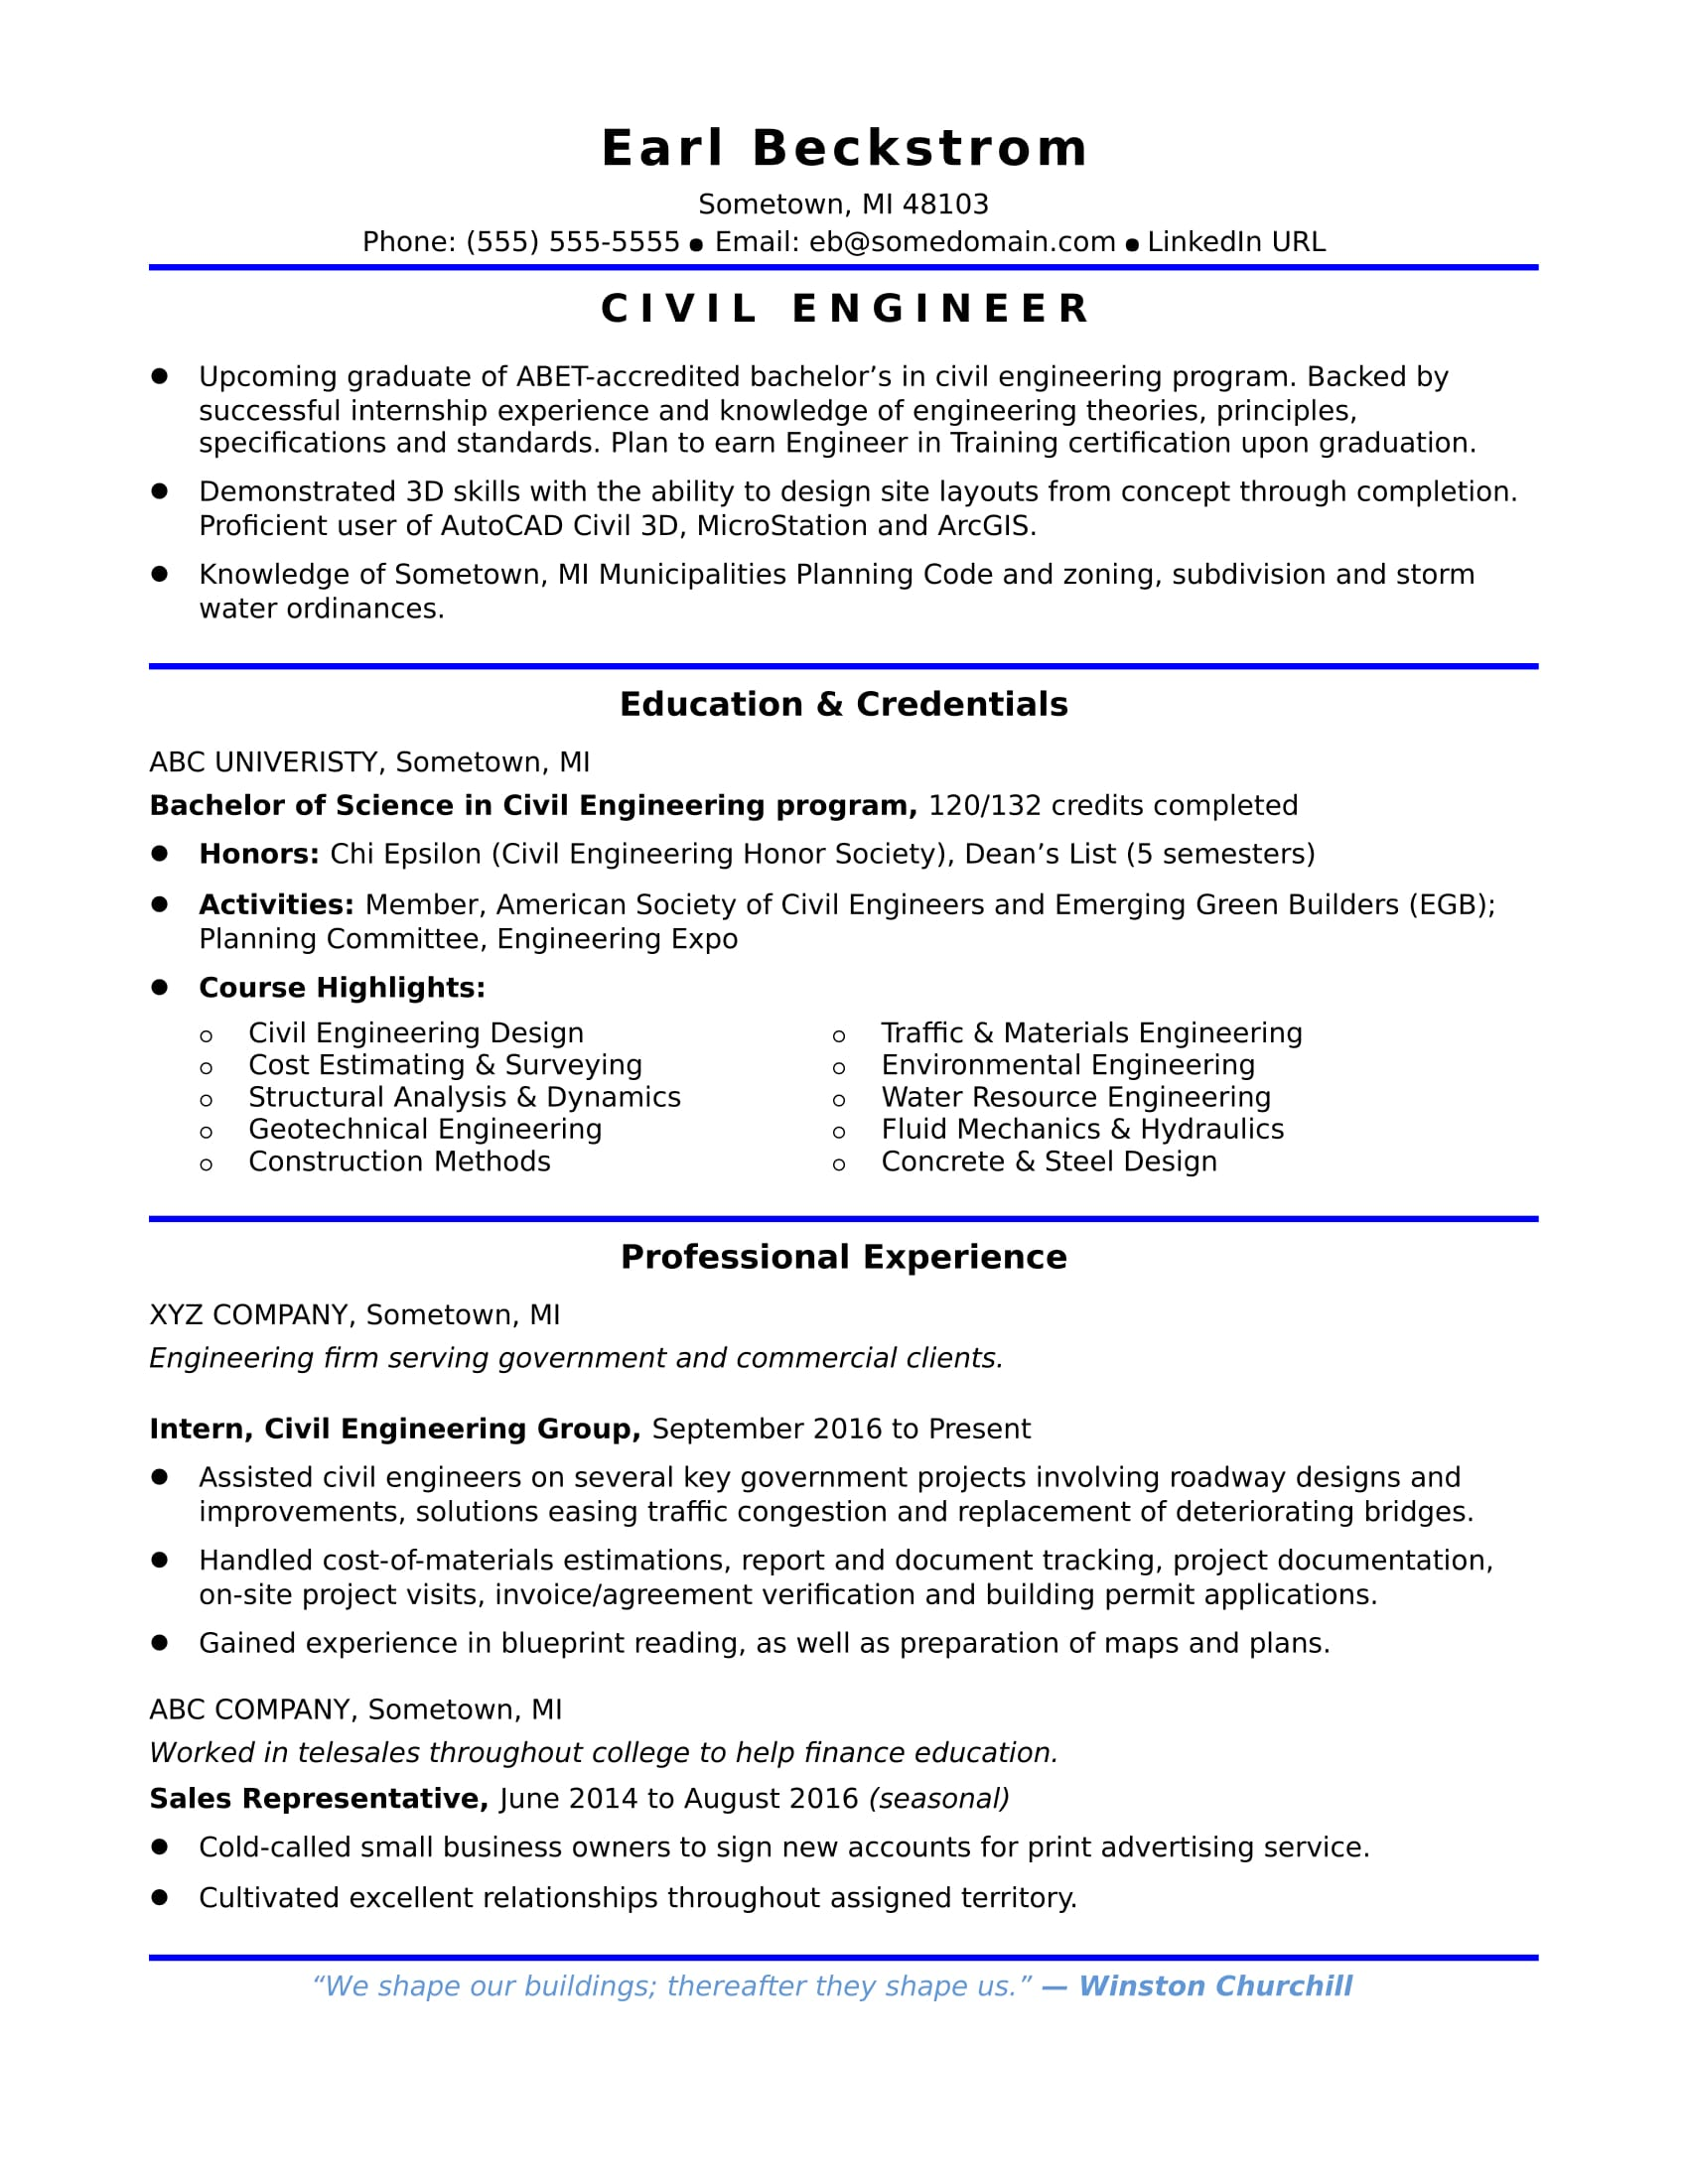 Sample Resume For An Entry Level Civil Engineer  Entry Level Job Resume